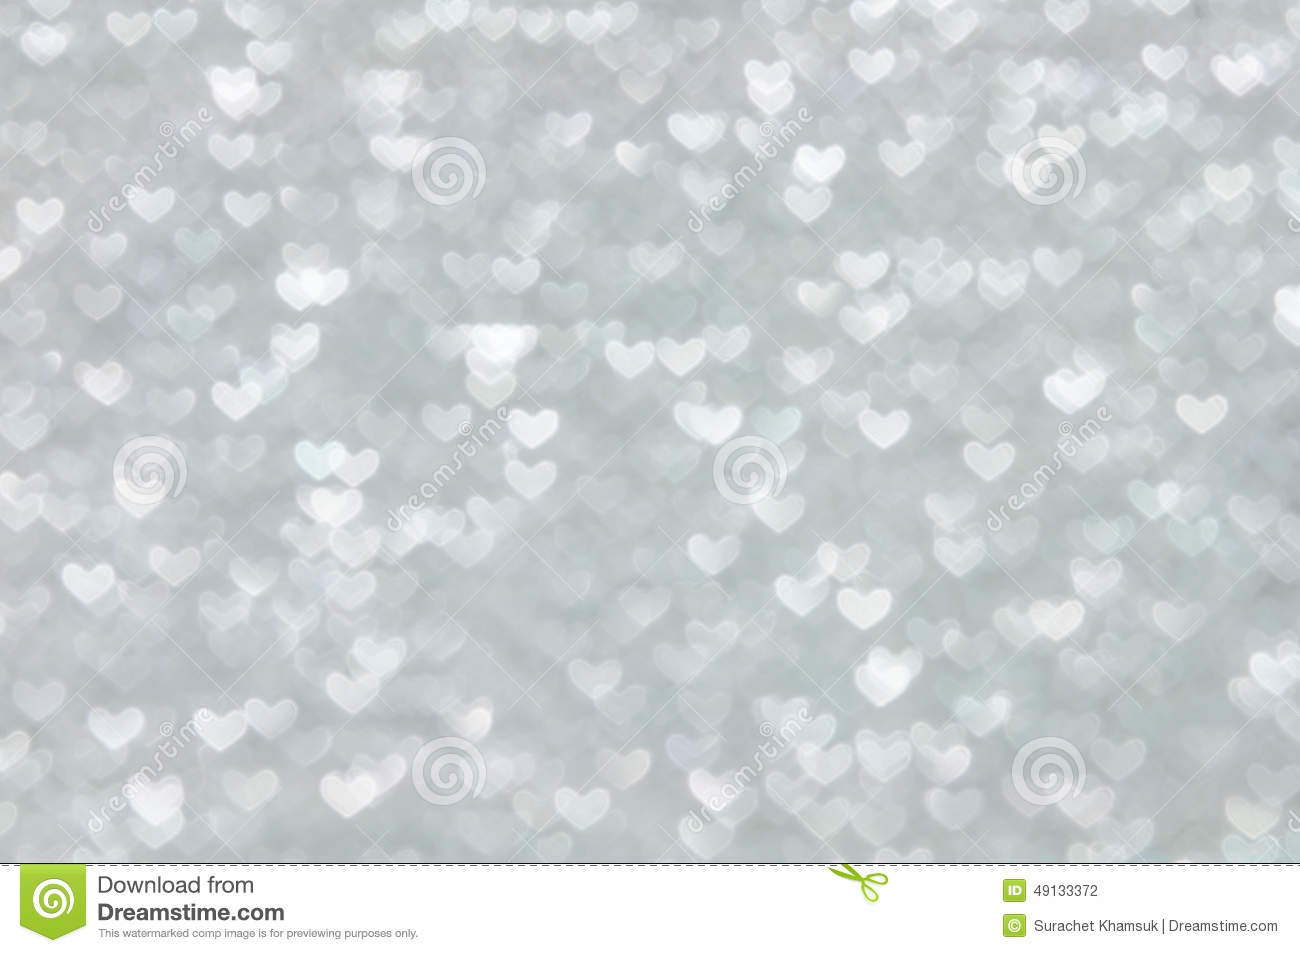 defocused abstract silver hearts light background stock